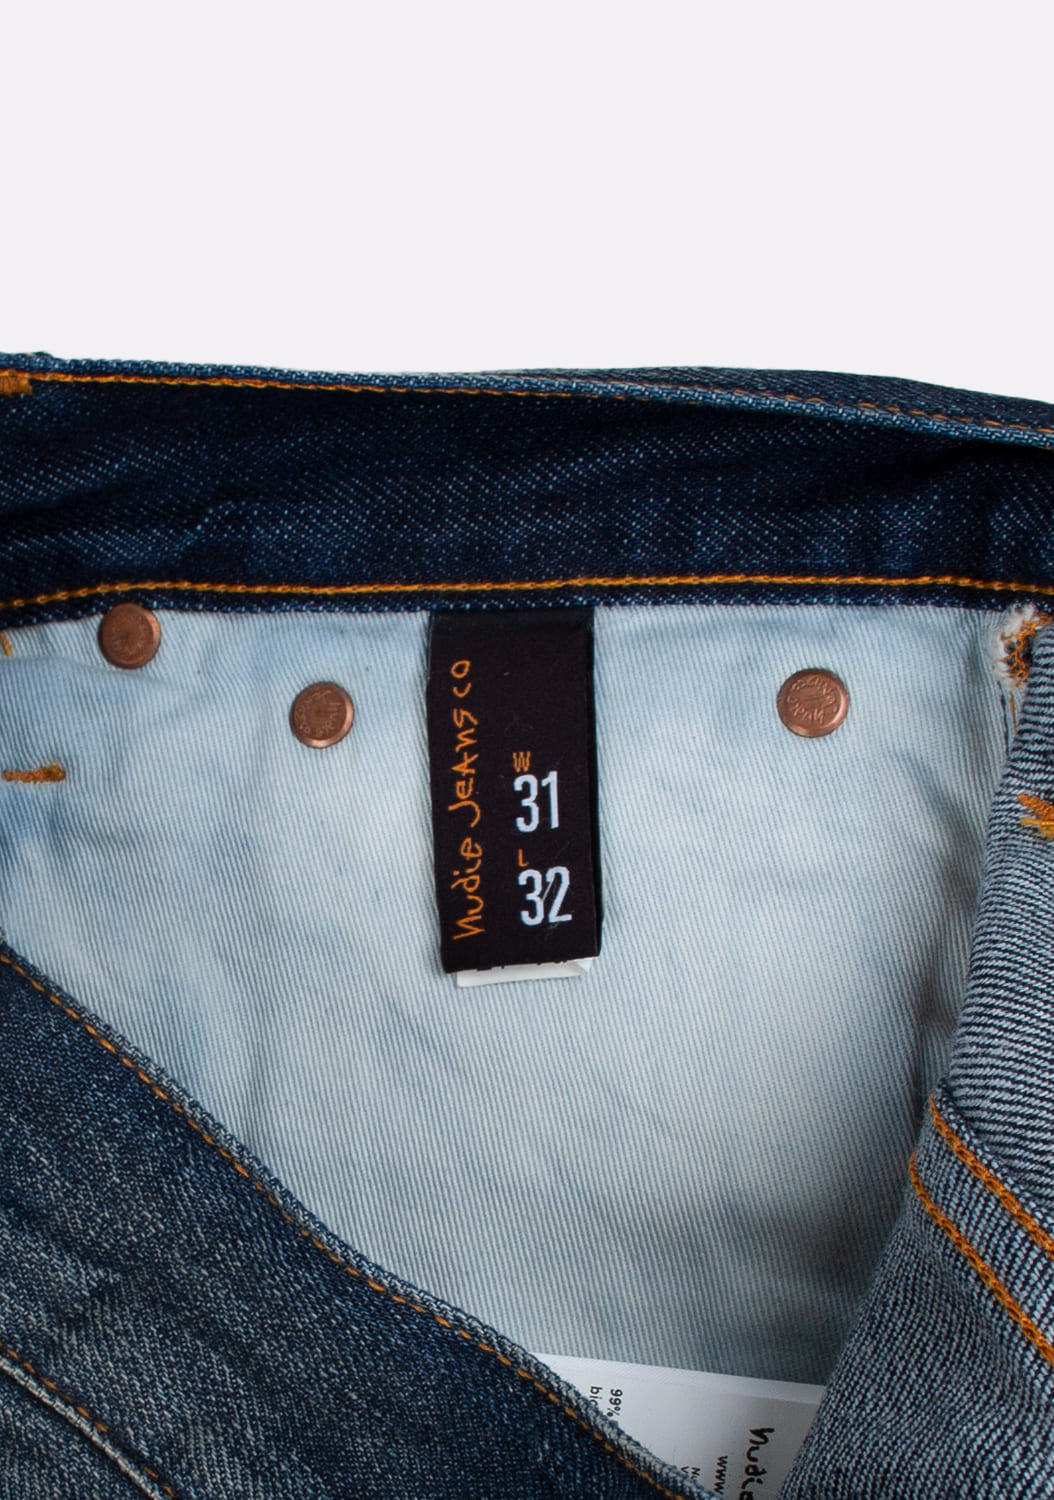 Nudie-Thin-Finn-Jonas-Replica-Selvage-Selvedge-melyni-dzinsai-dydis-31-32 (7)